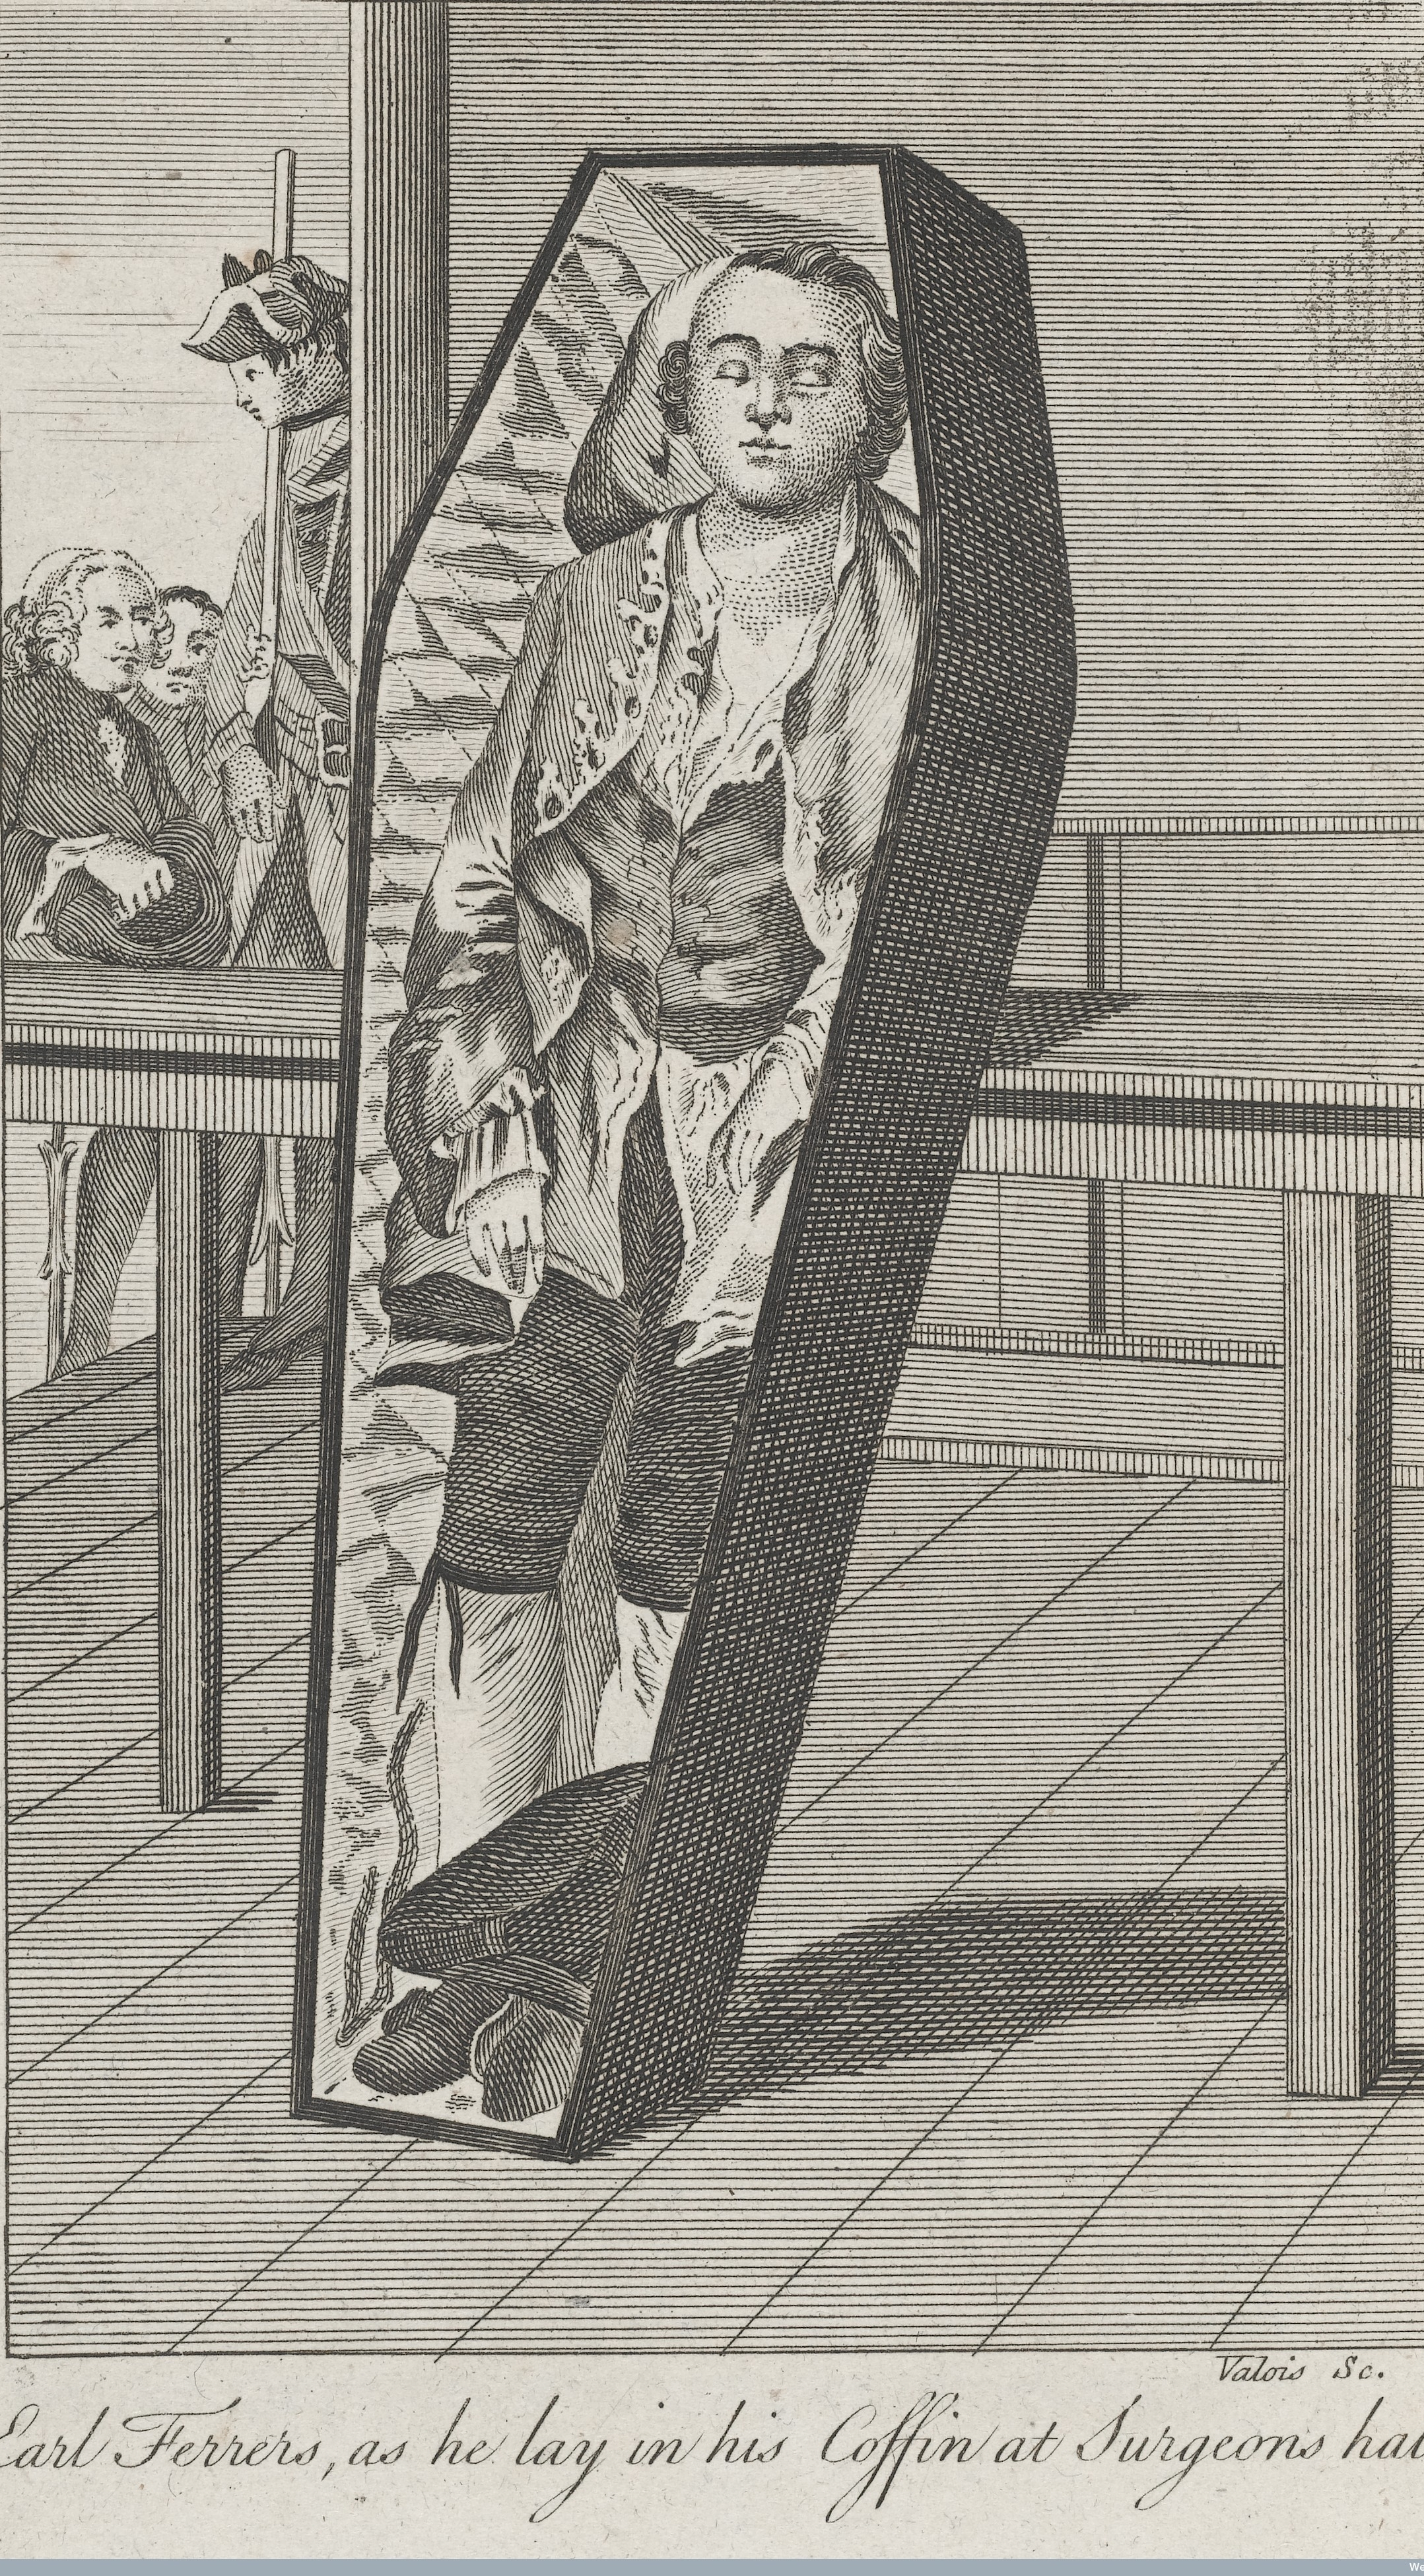 Lord Laurence Earl Ferrers lying in his coffin at the Surgeon's Hall after being hanged for the murder of Mr Johnson his Stewart.  Wellcome Images L0040865